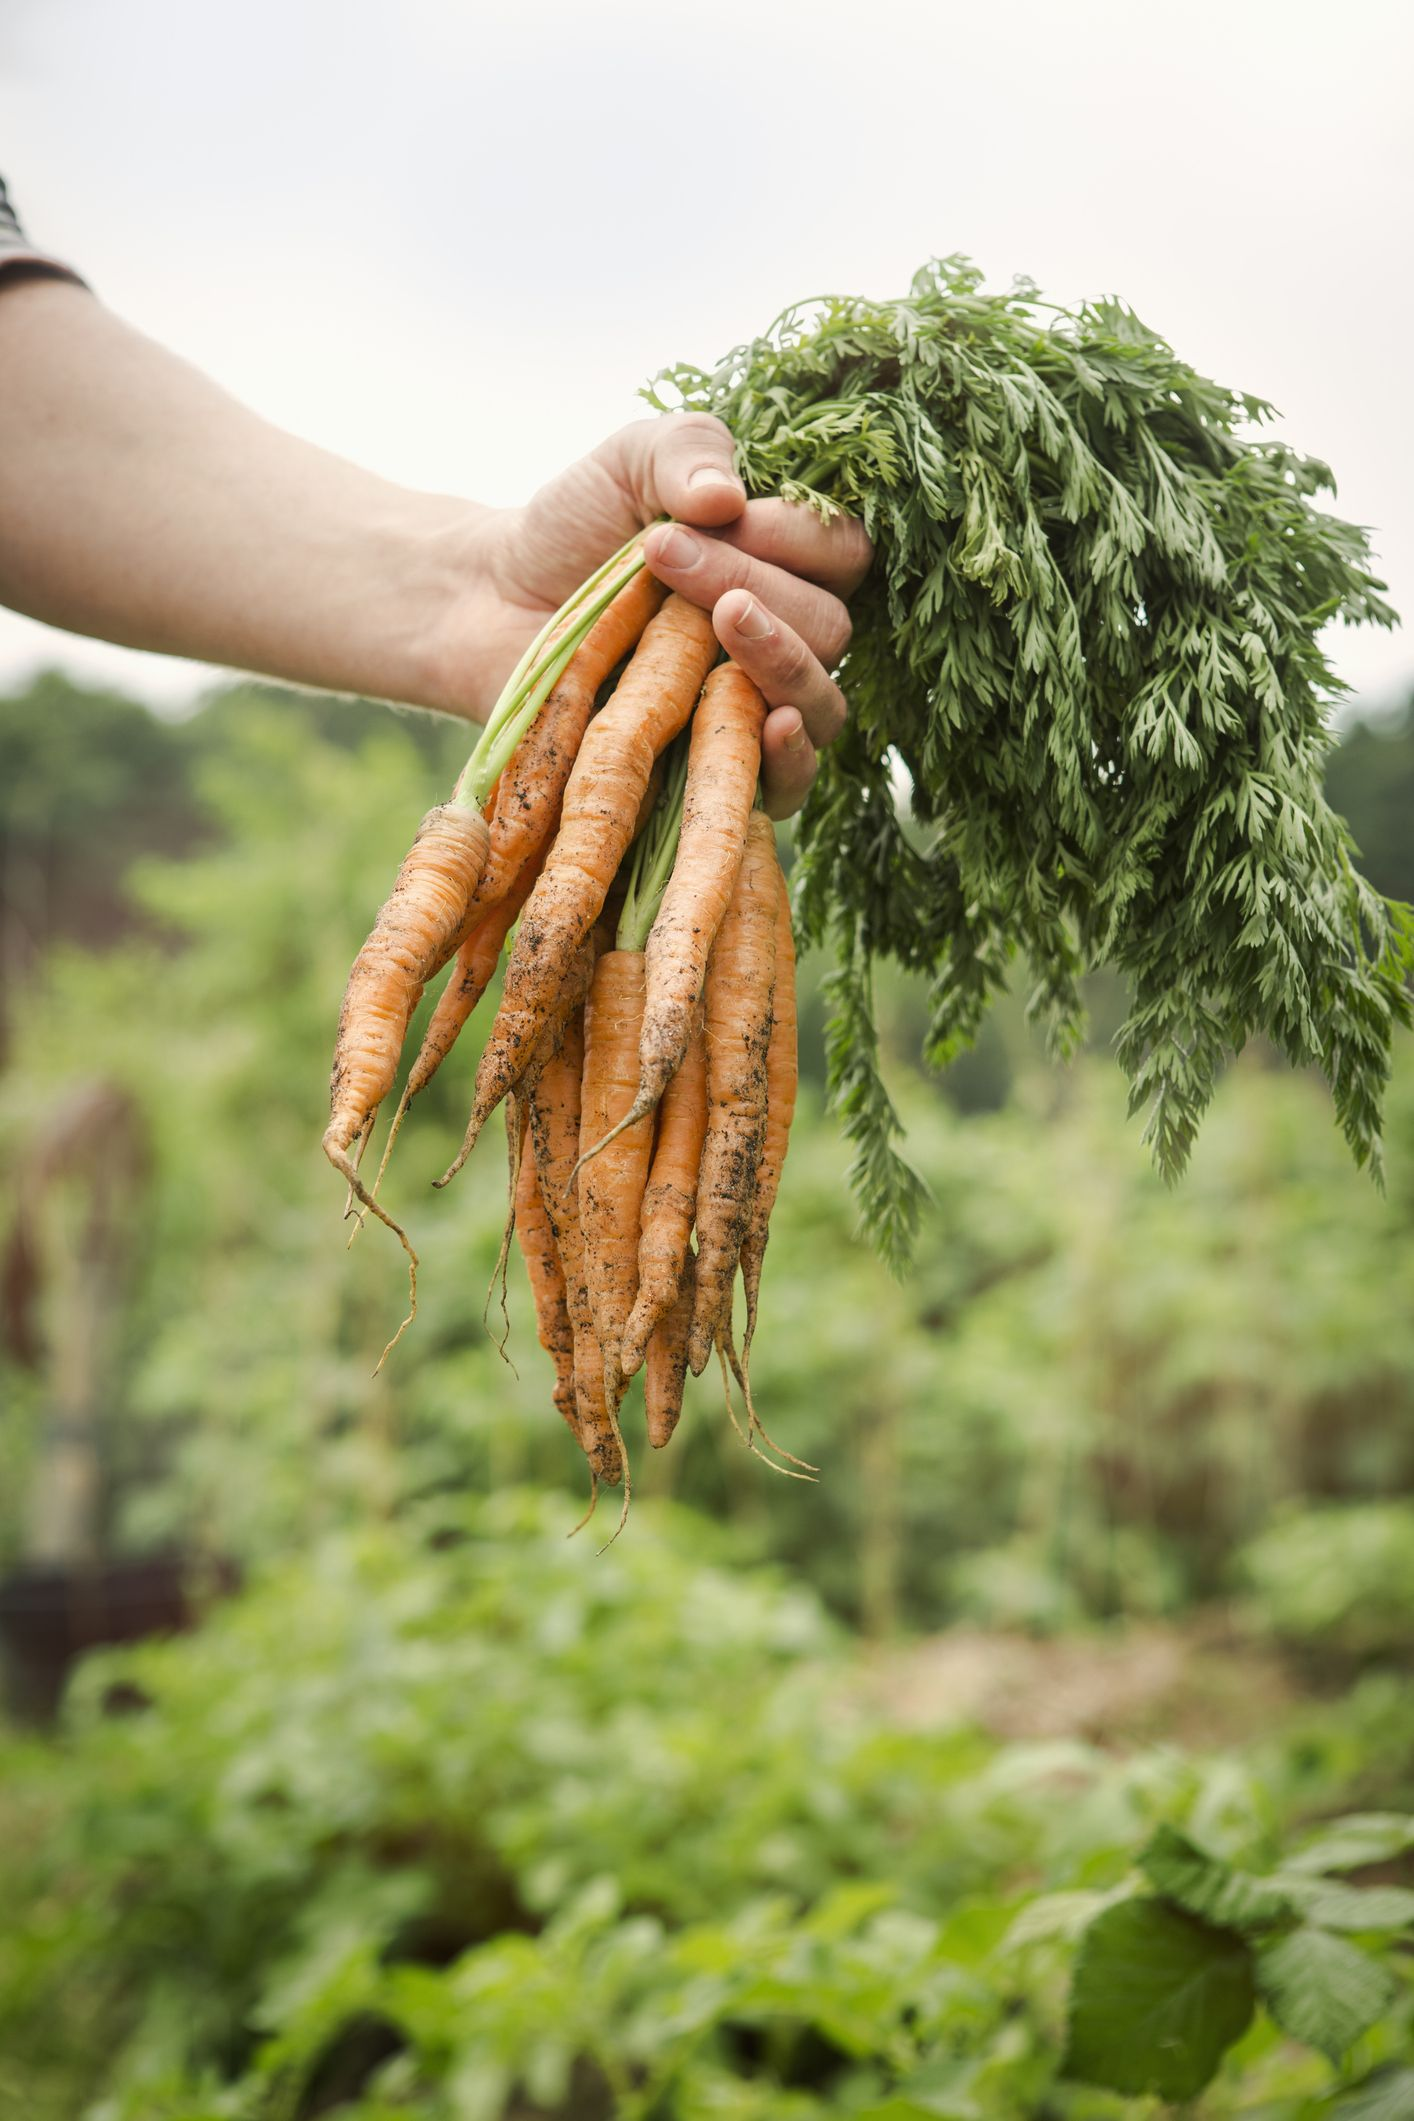 <p><i><strong>What it needs: </strong></i>Sow carrot seeds by late July to early August. Keep the soil moist because they won't germinate in dry soil. Thin plants because if they're too close together, they'll be stunted and deformed. Try mulching with straw to make your harvest last longer. While they won't keep growing in cold weather, they will become sweeter-tasting after a frost, says Smith.</p><p><i><strong>Varieties to try: </strong></i>Scarlet Nantes, Nelson and Napoli</p>